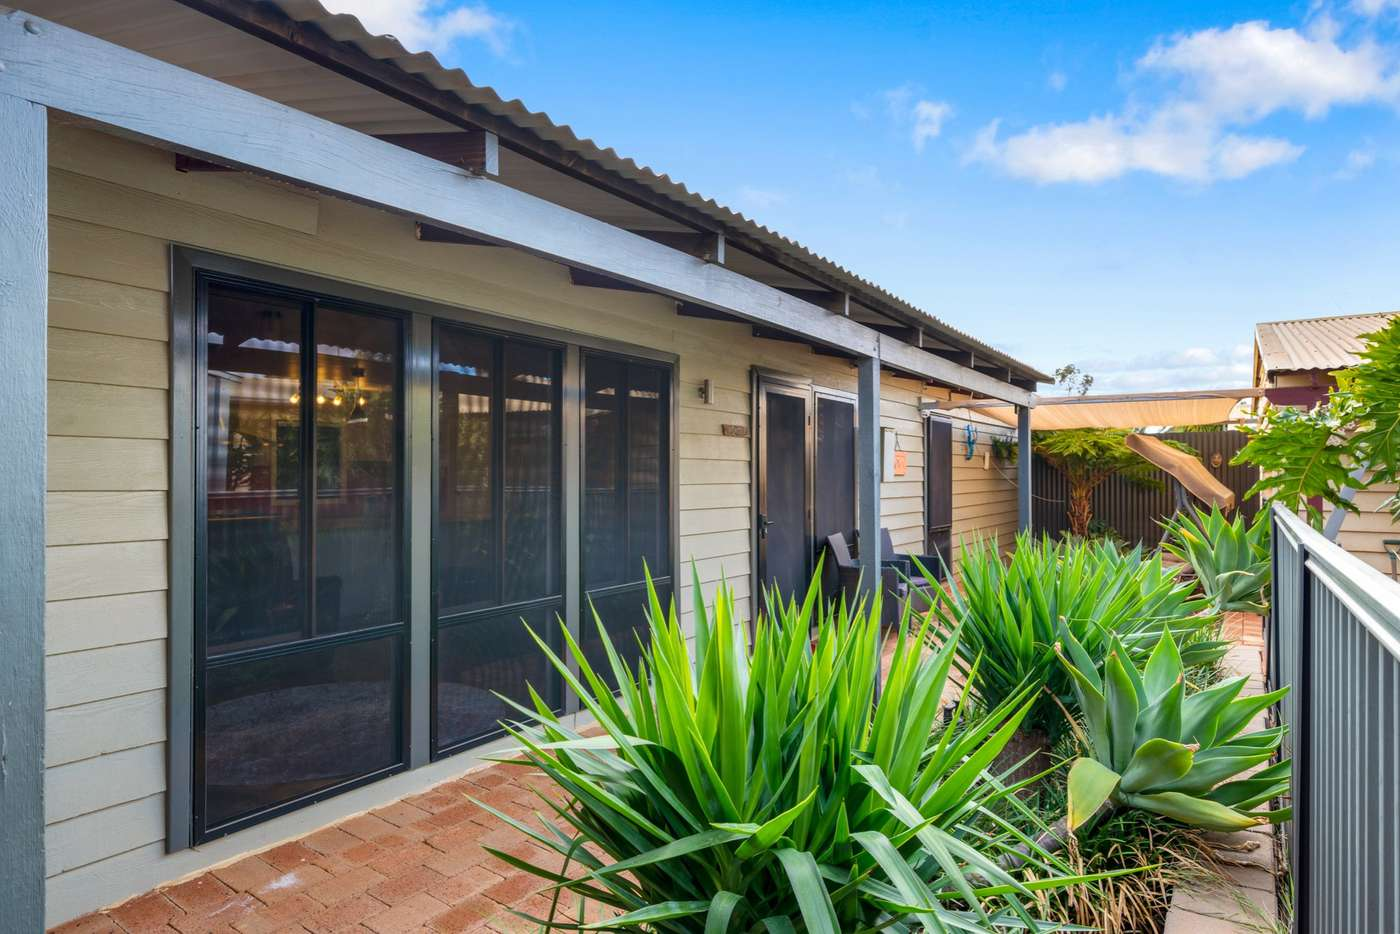 Main view of Homely house listing, 4/8 Rodgers Way, South Kalgoorlie WA 6430